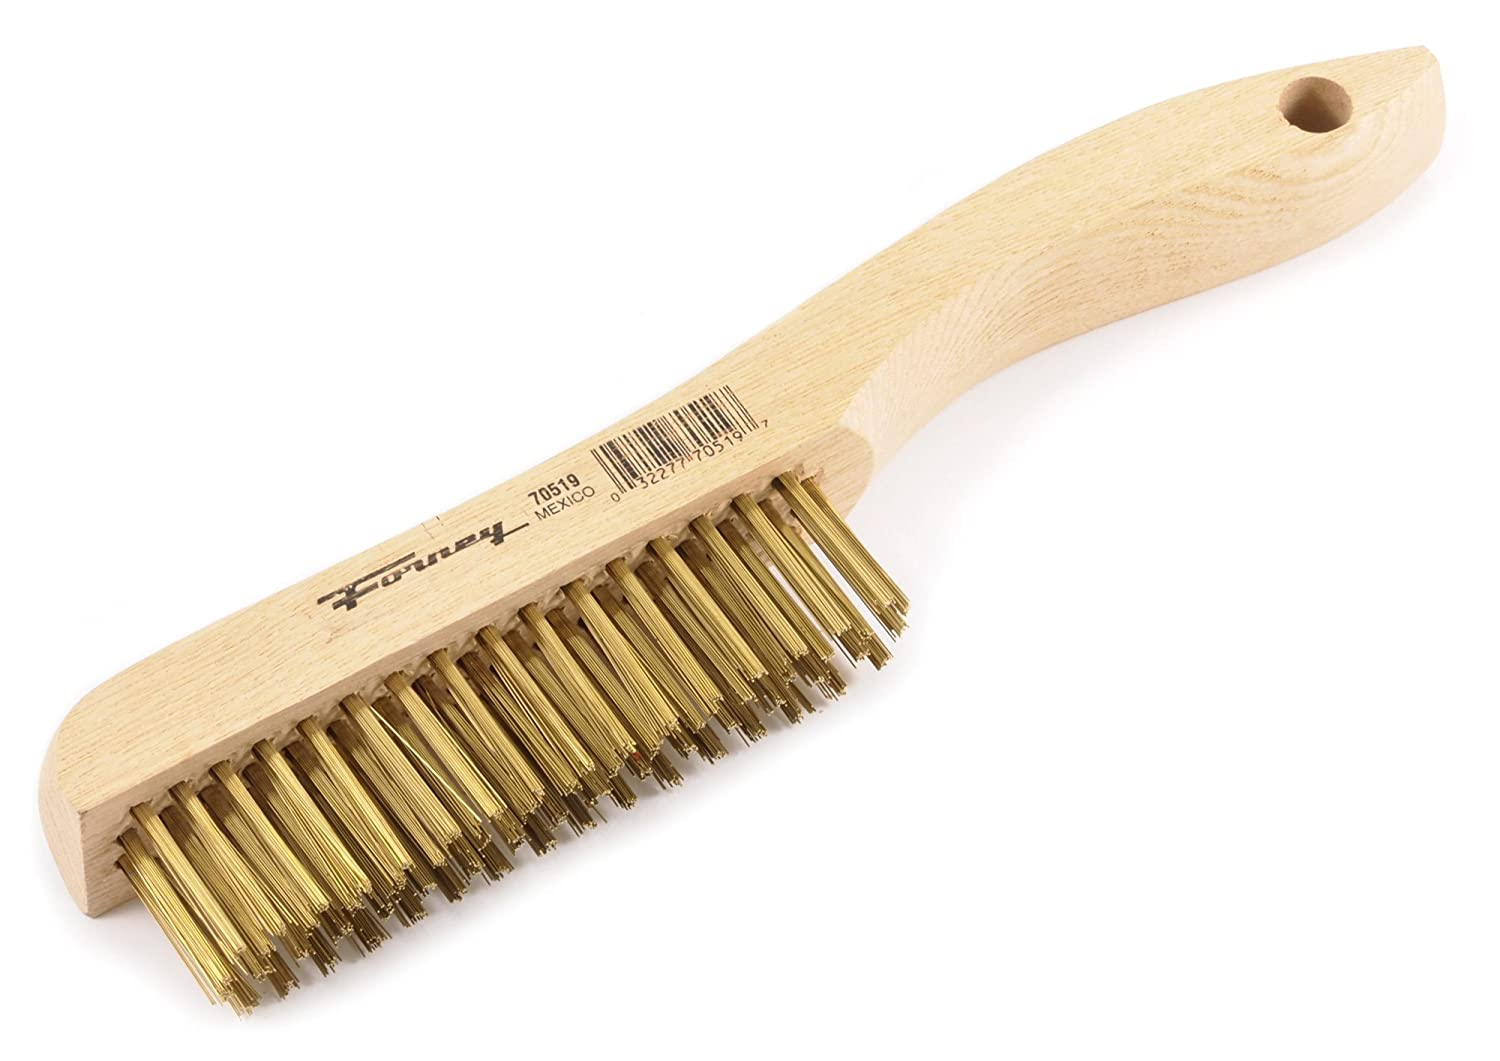 Forney 70519 Wire Scratch Brush Brass with Wood Shoe Handle 10 1 4 Inch by .012 Inch